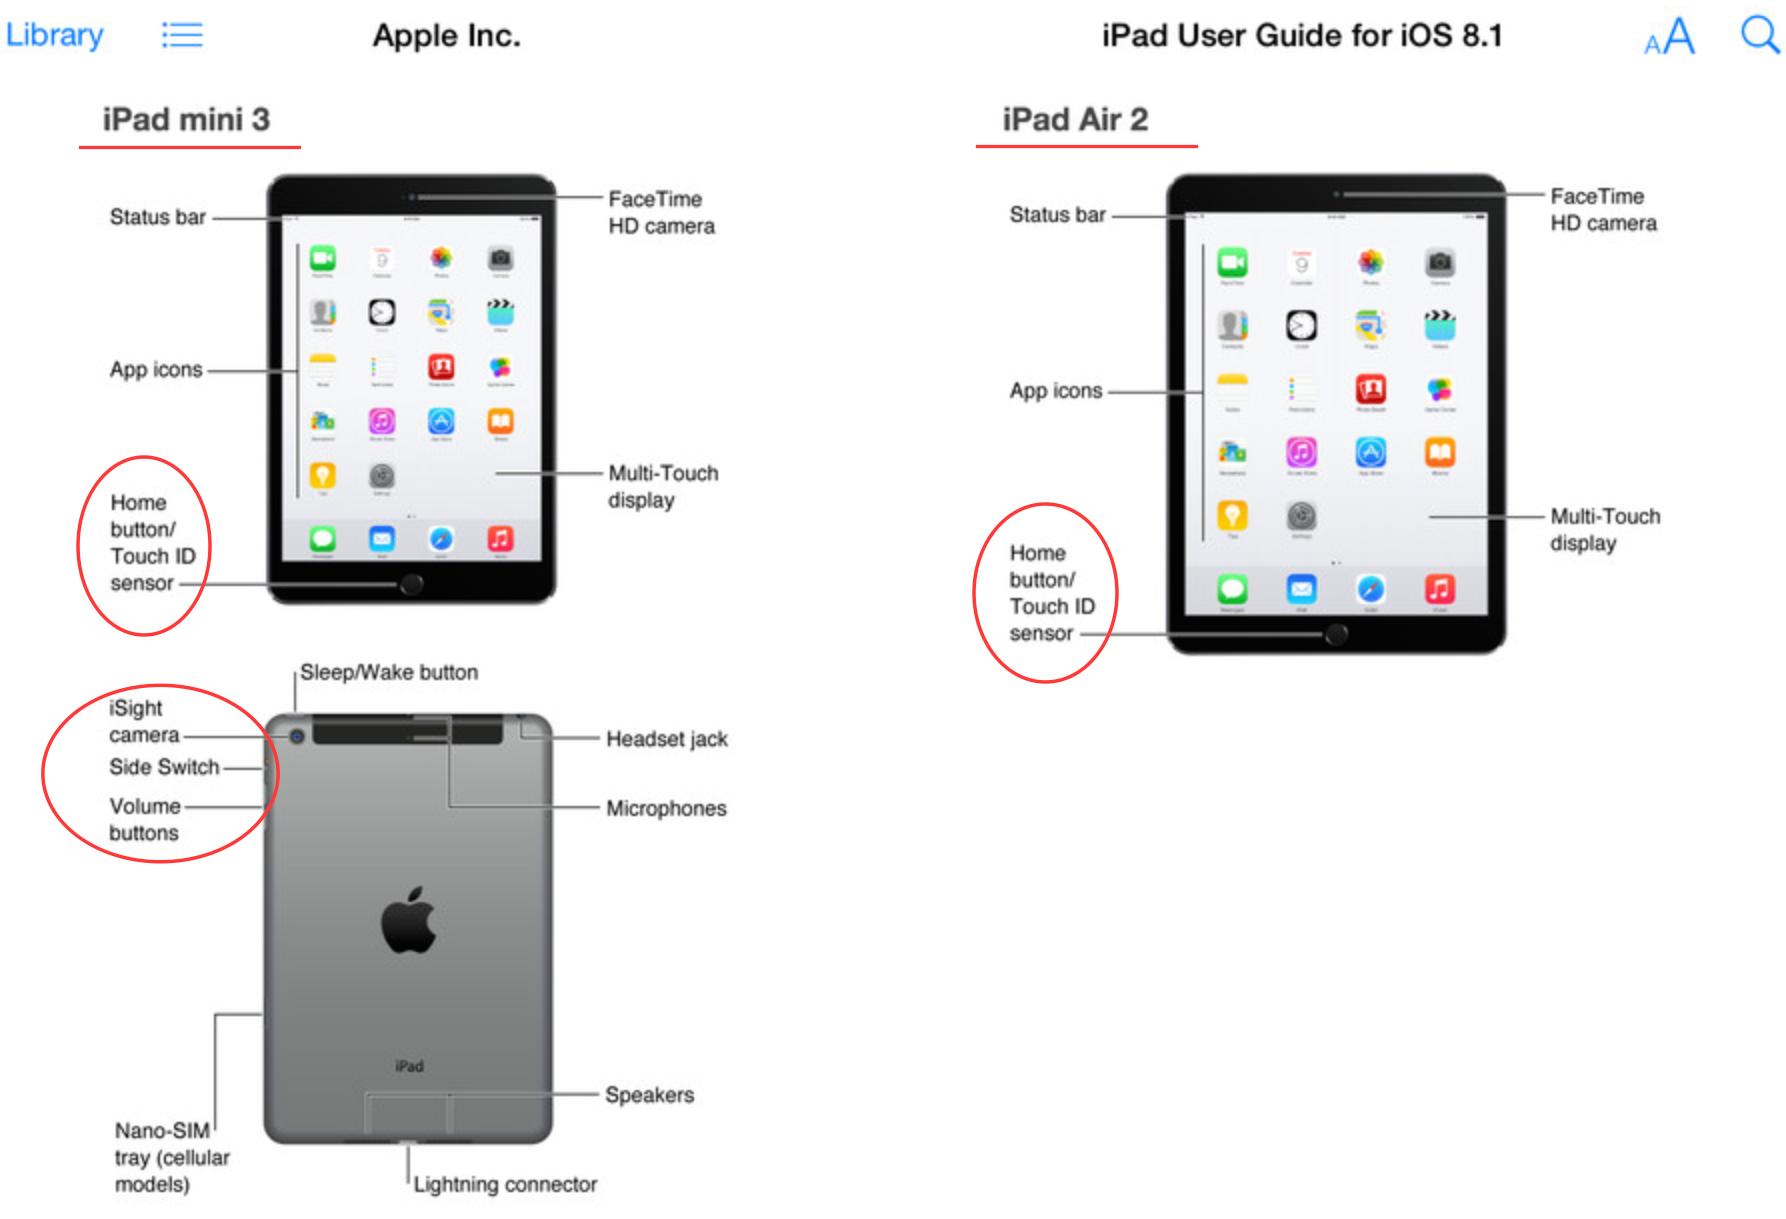 Apple LEAK: iPad Air 2 amp; iPad mini 3 mit iOS 8.1